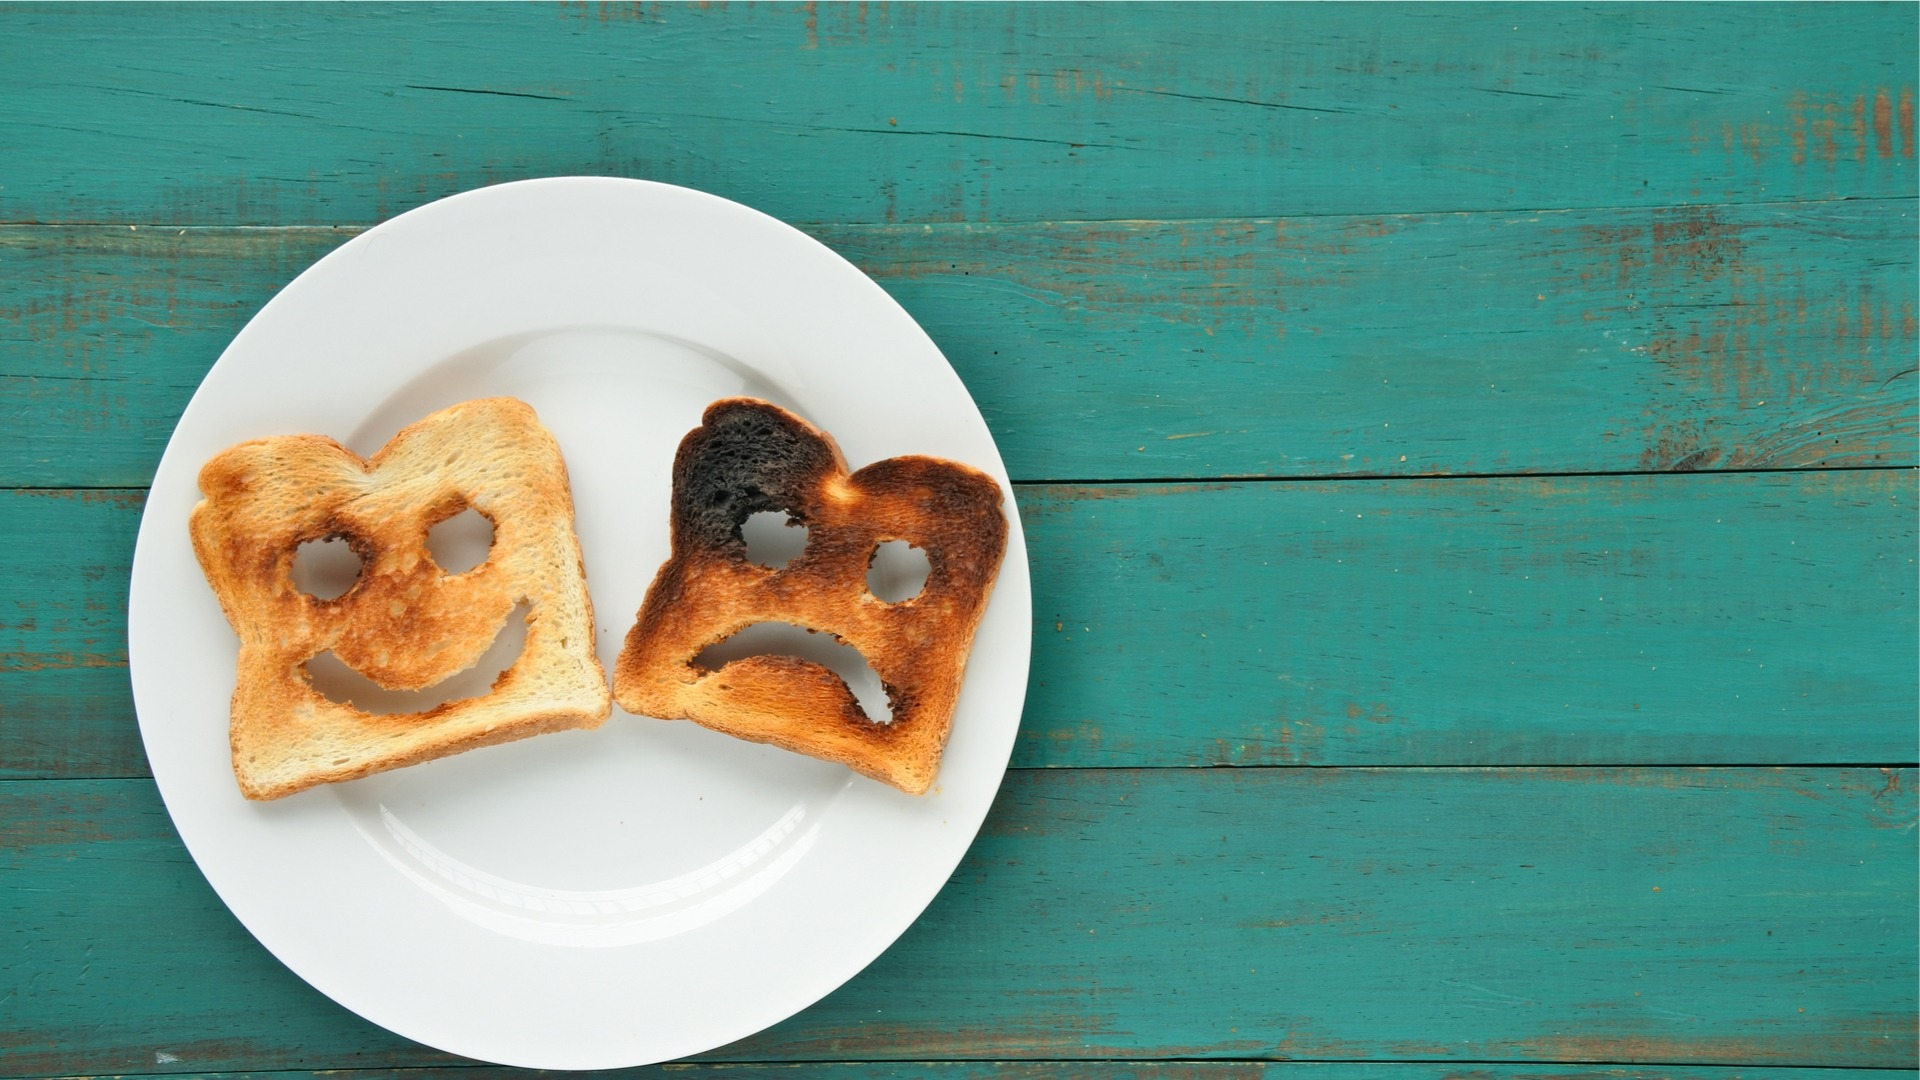 Happy and sad face toasts